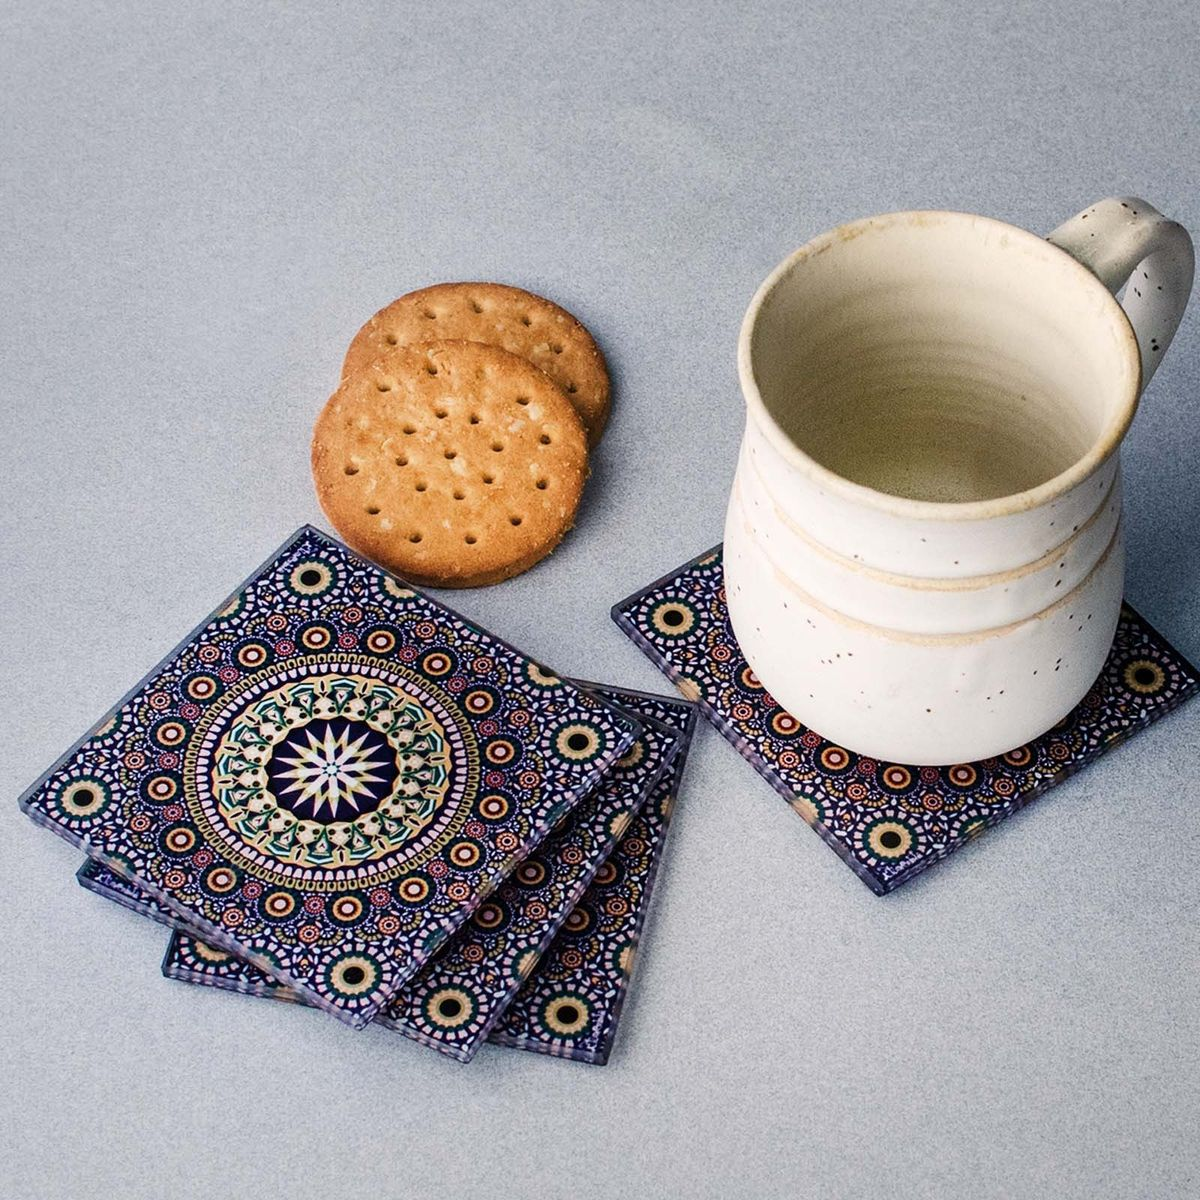 Moroccan Print Glass Coasters - Set of 4